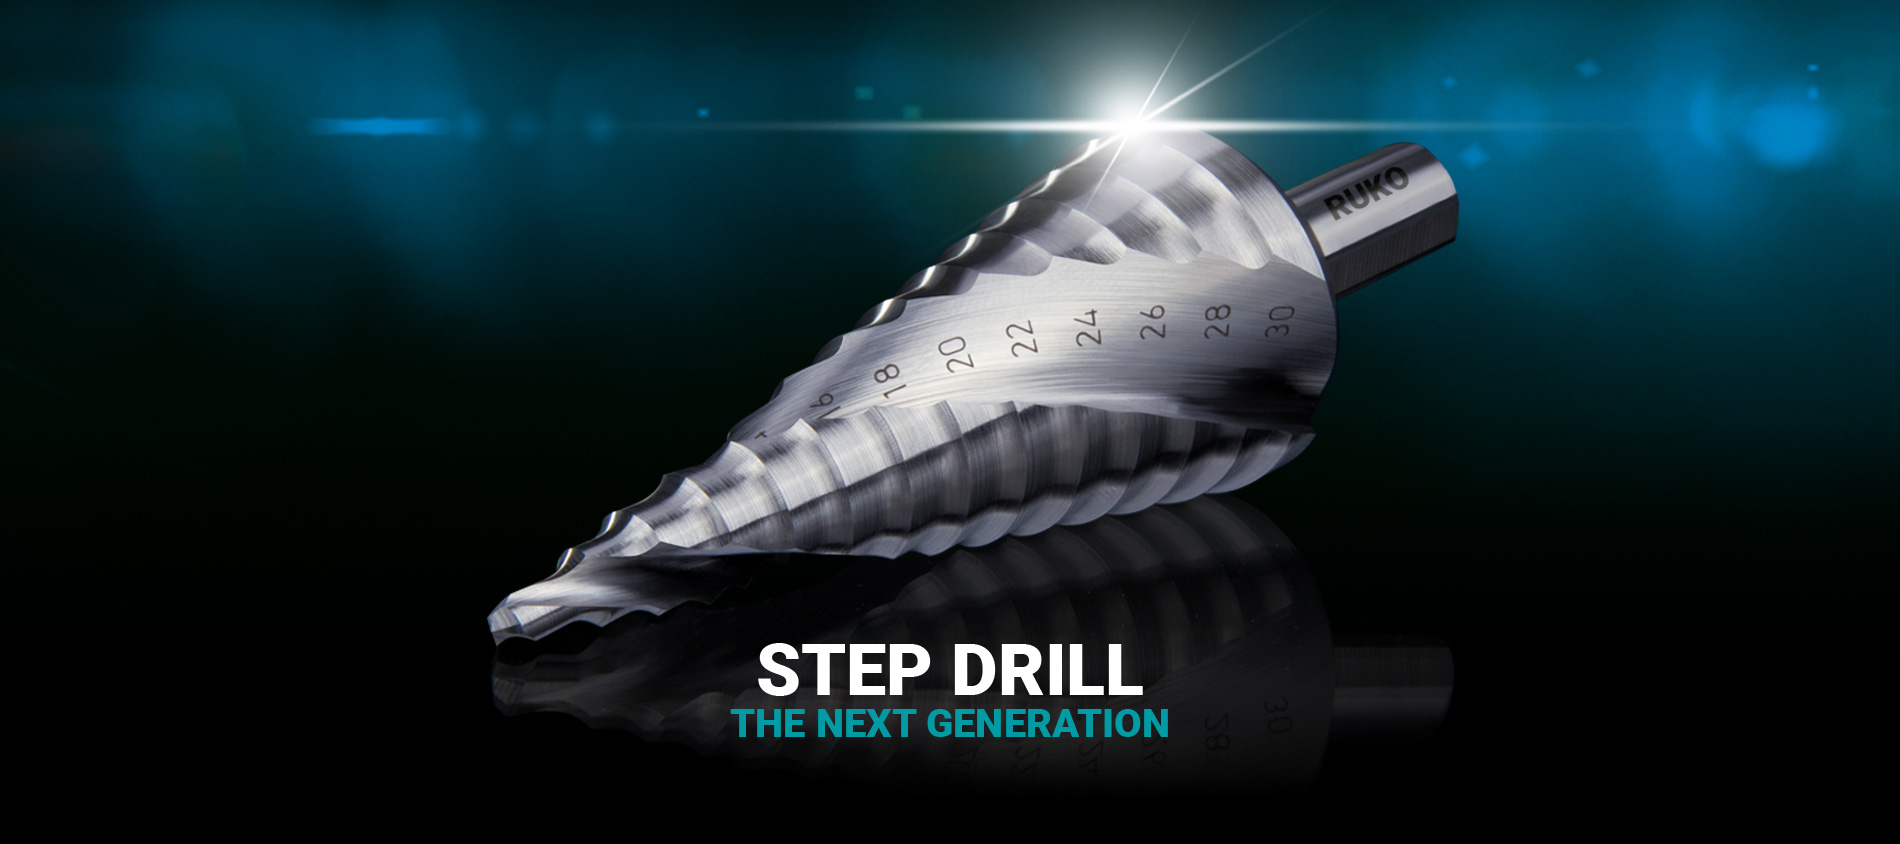 Step Drill - The Next Generation